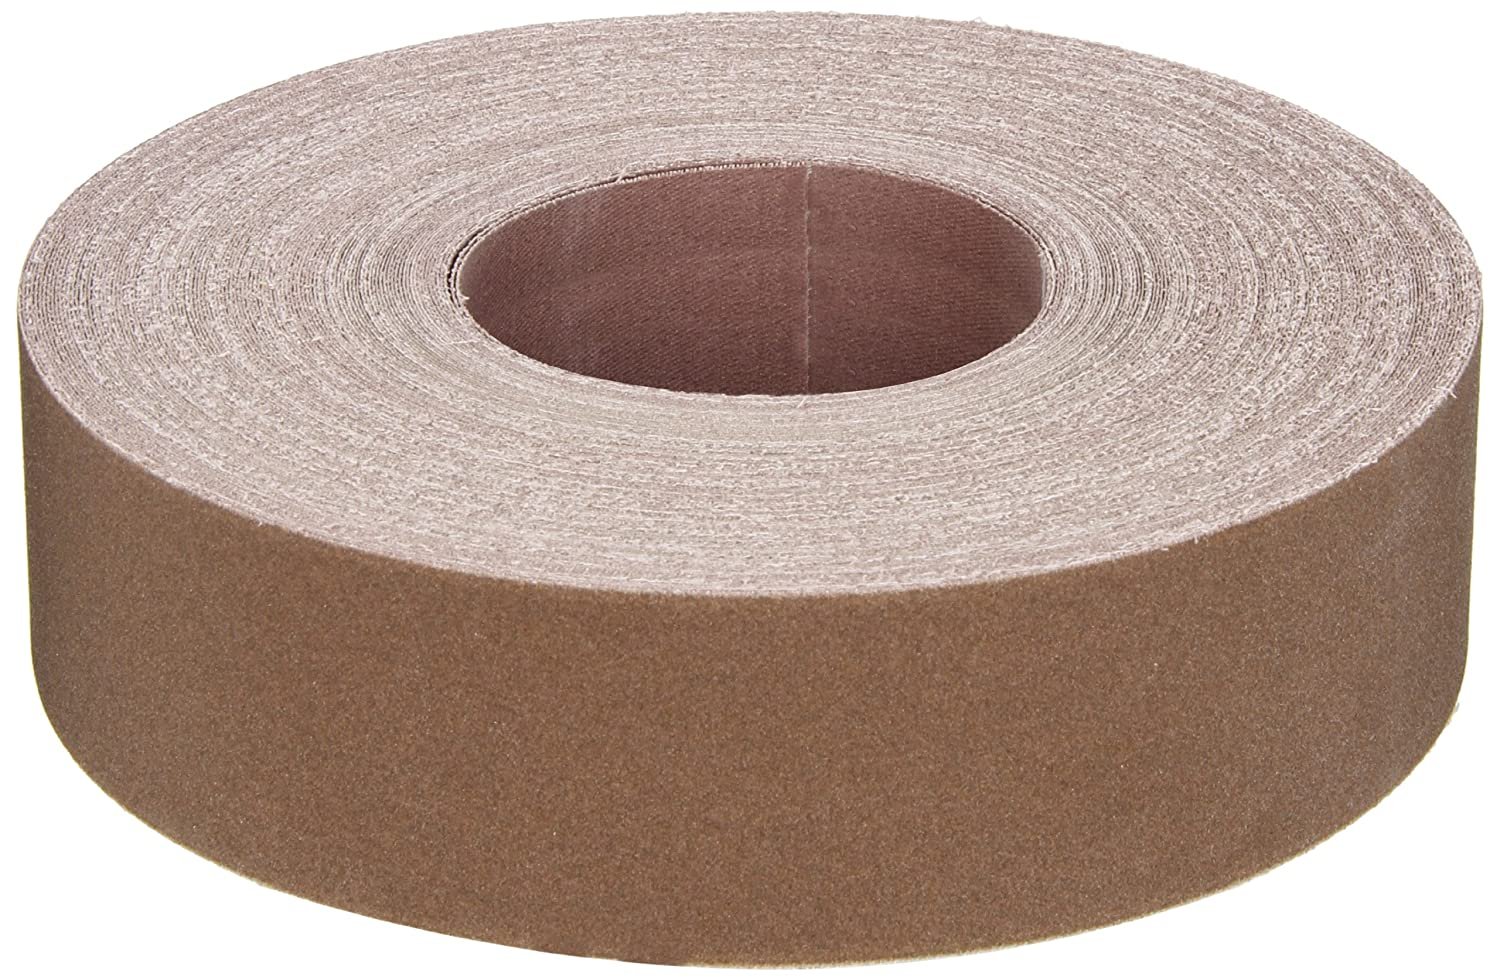 Norton K225 Metalite Abrasive Roll Grit P180 Pack of 5 Cloth Backing Aluminum Oxide 2 Width x 50yd Length